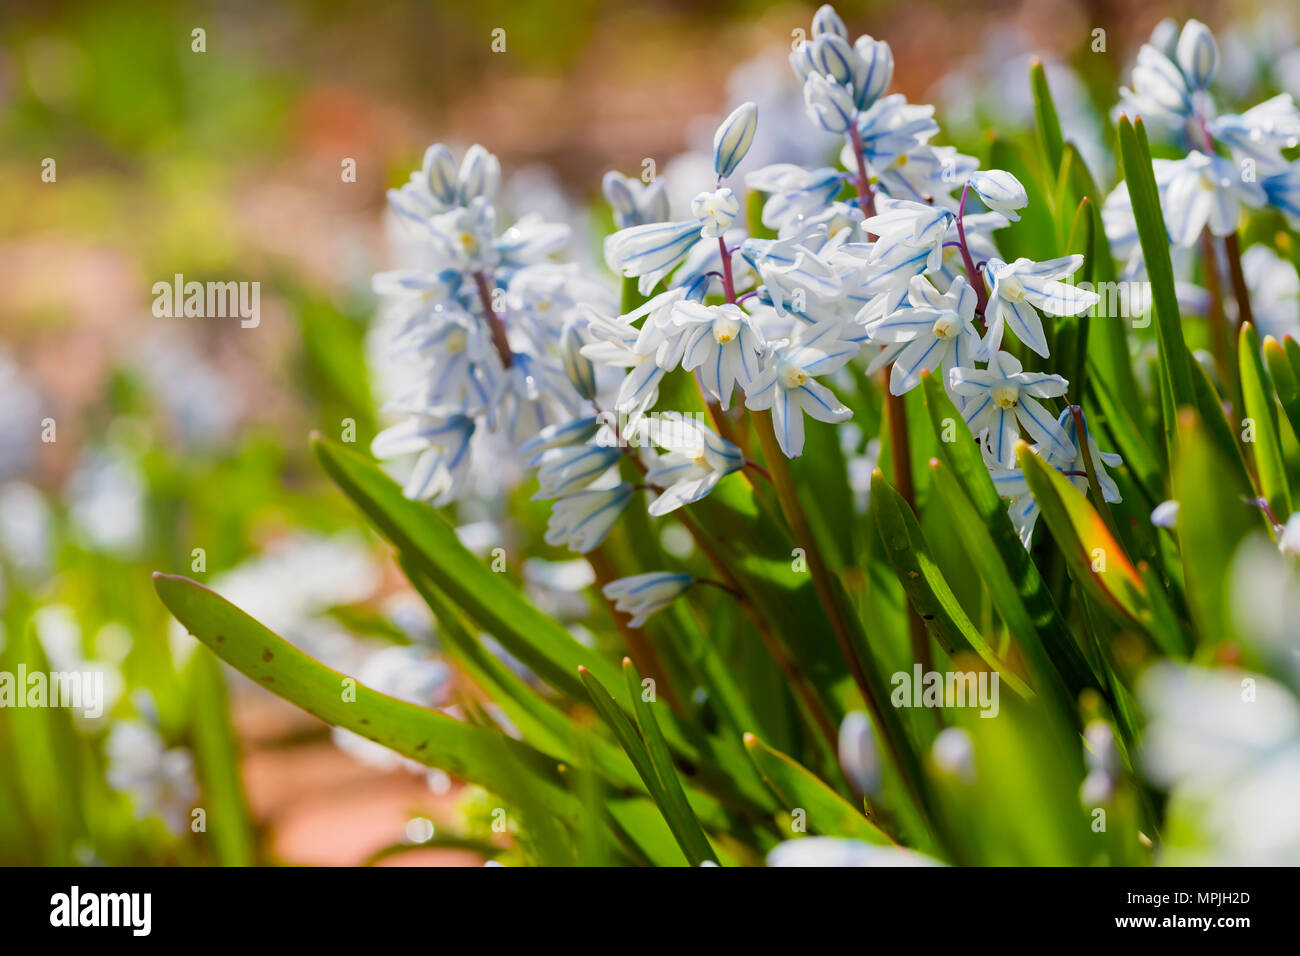 Striped Squill (Puschkinia scilloides) flowering profusly in the spring garden. Stock Photo